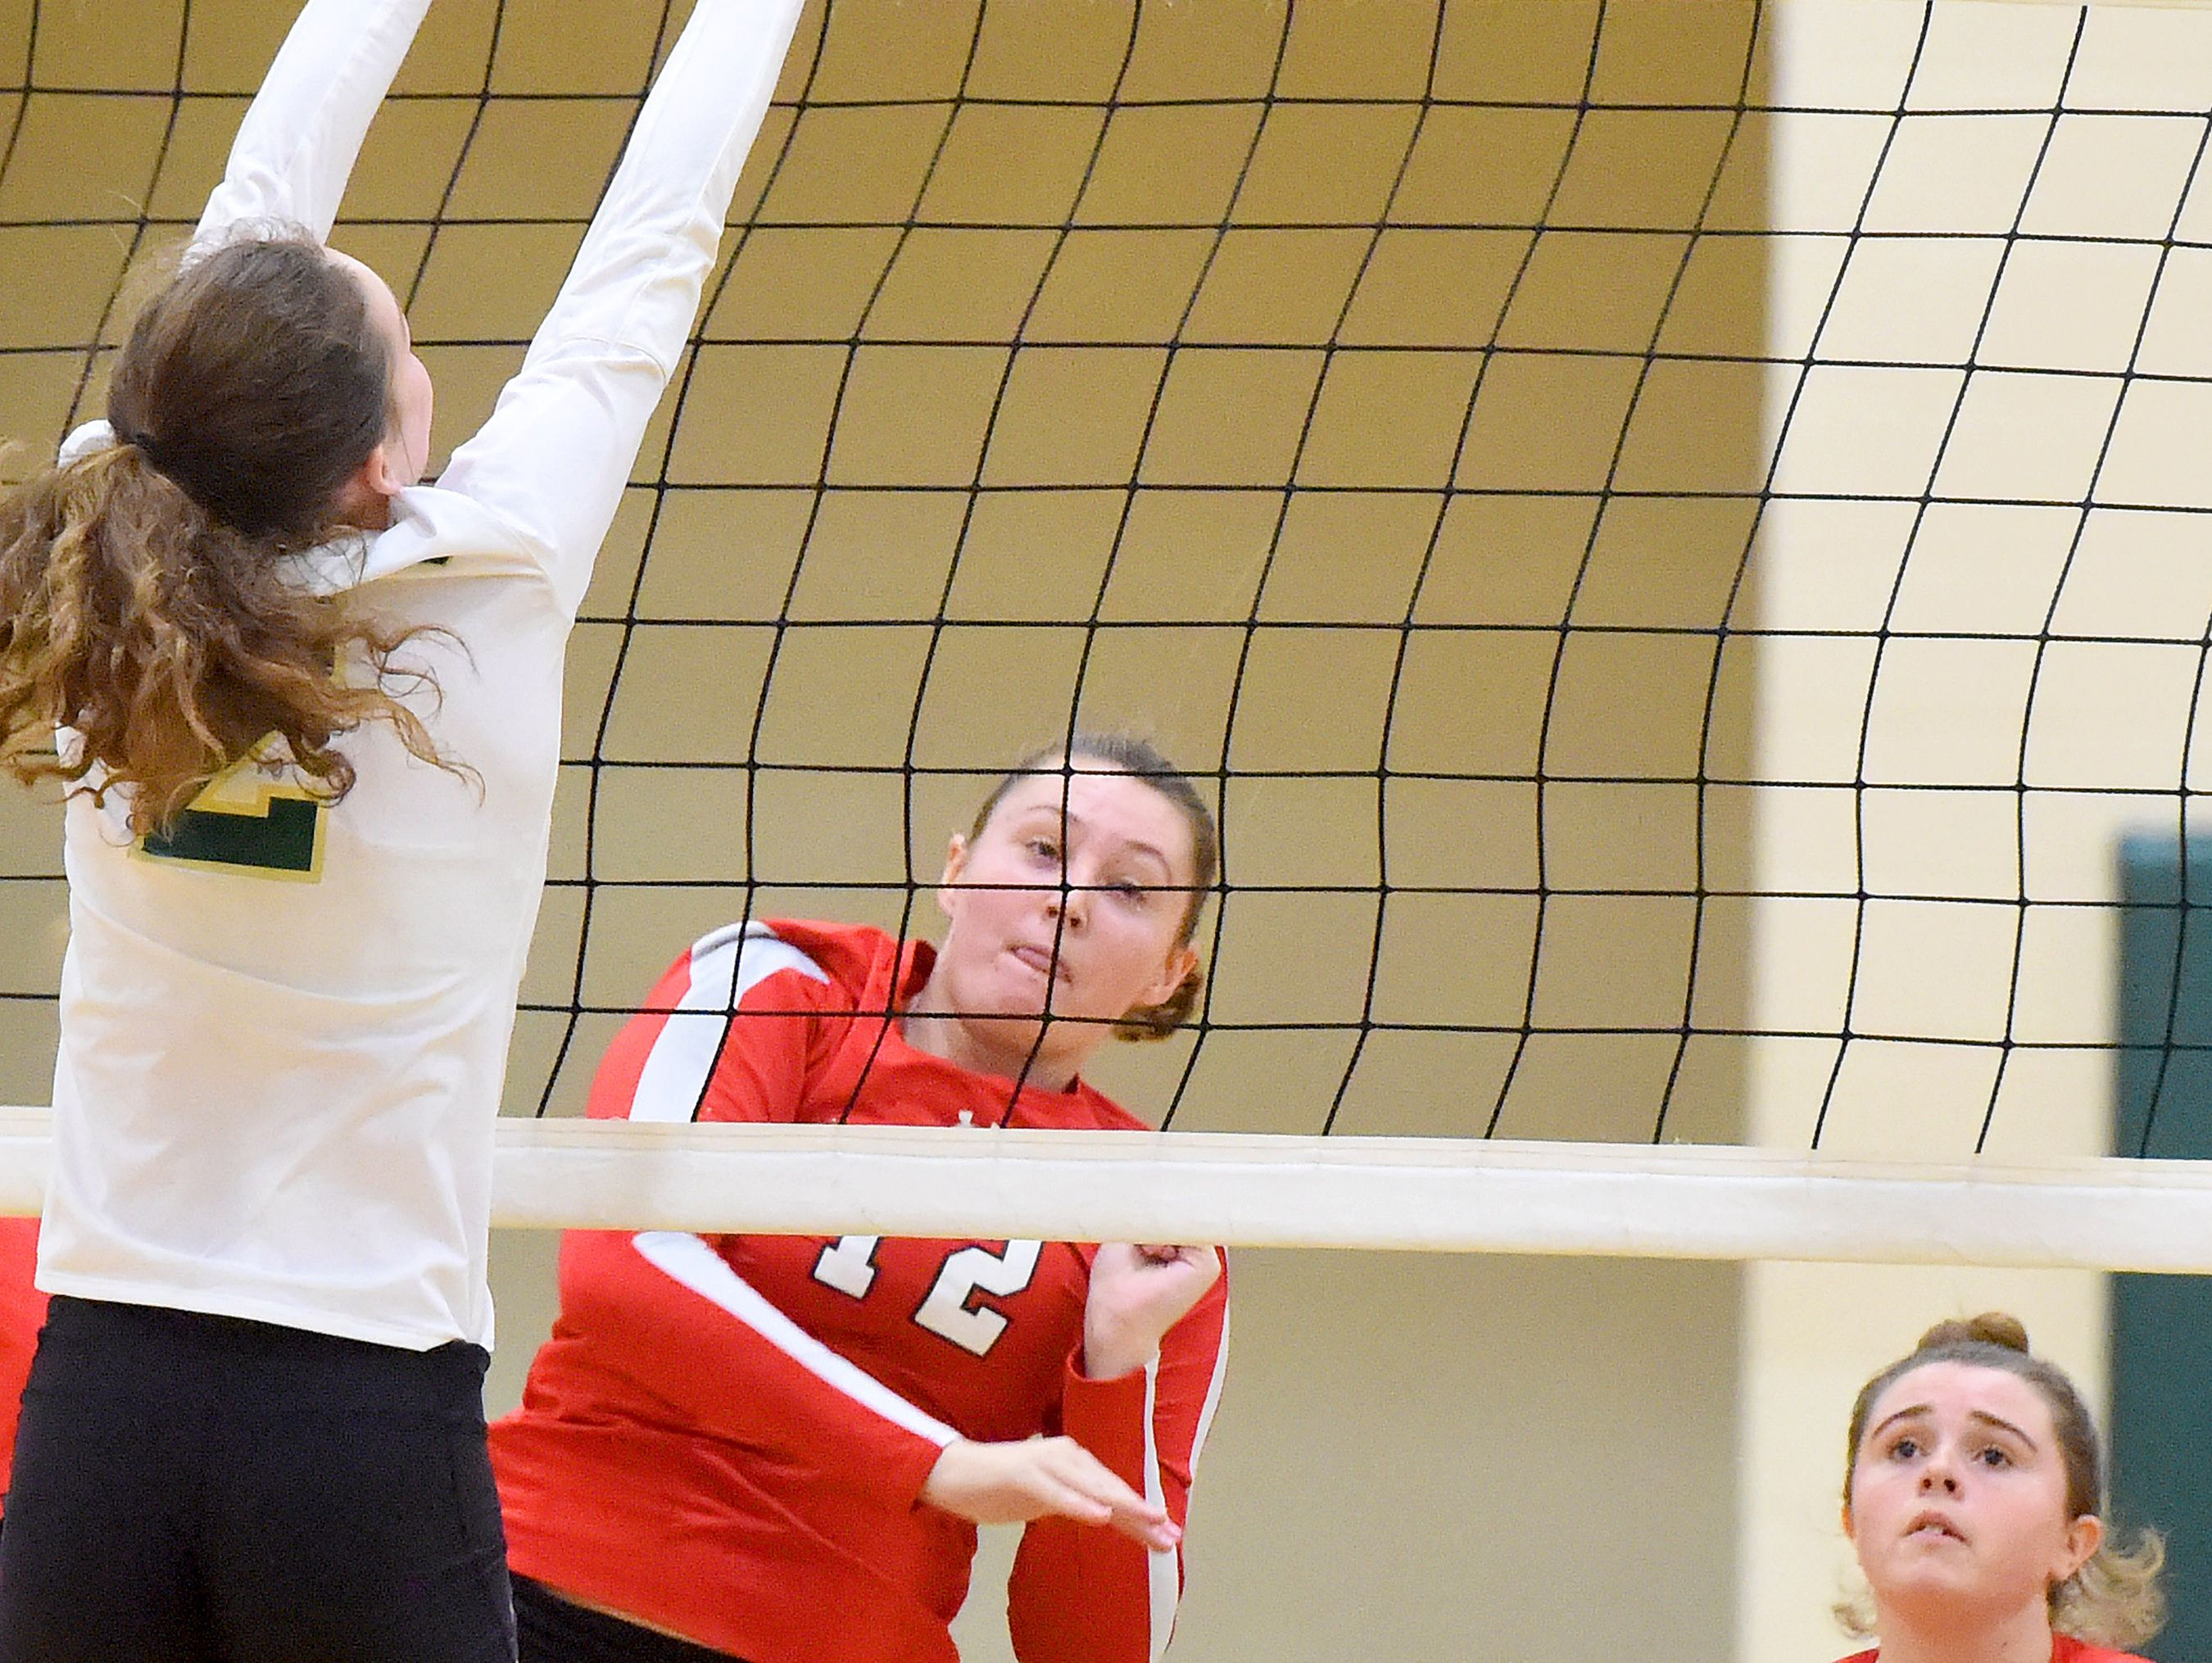 Riverheads' Emma Casto spikes the ball during a volleyball match played in Fishersville on Thursday, Oct. 20, 2016.